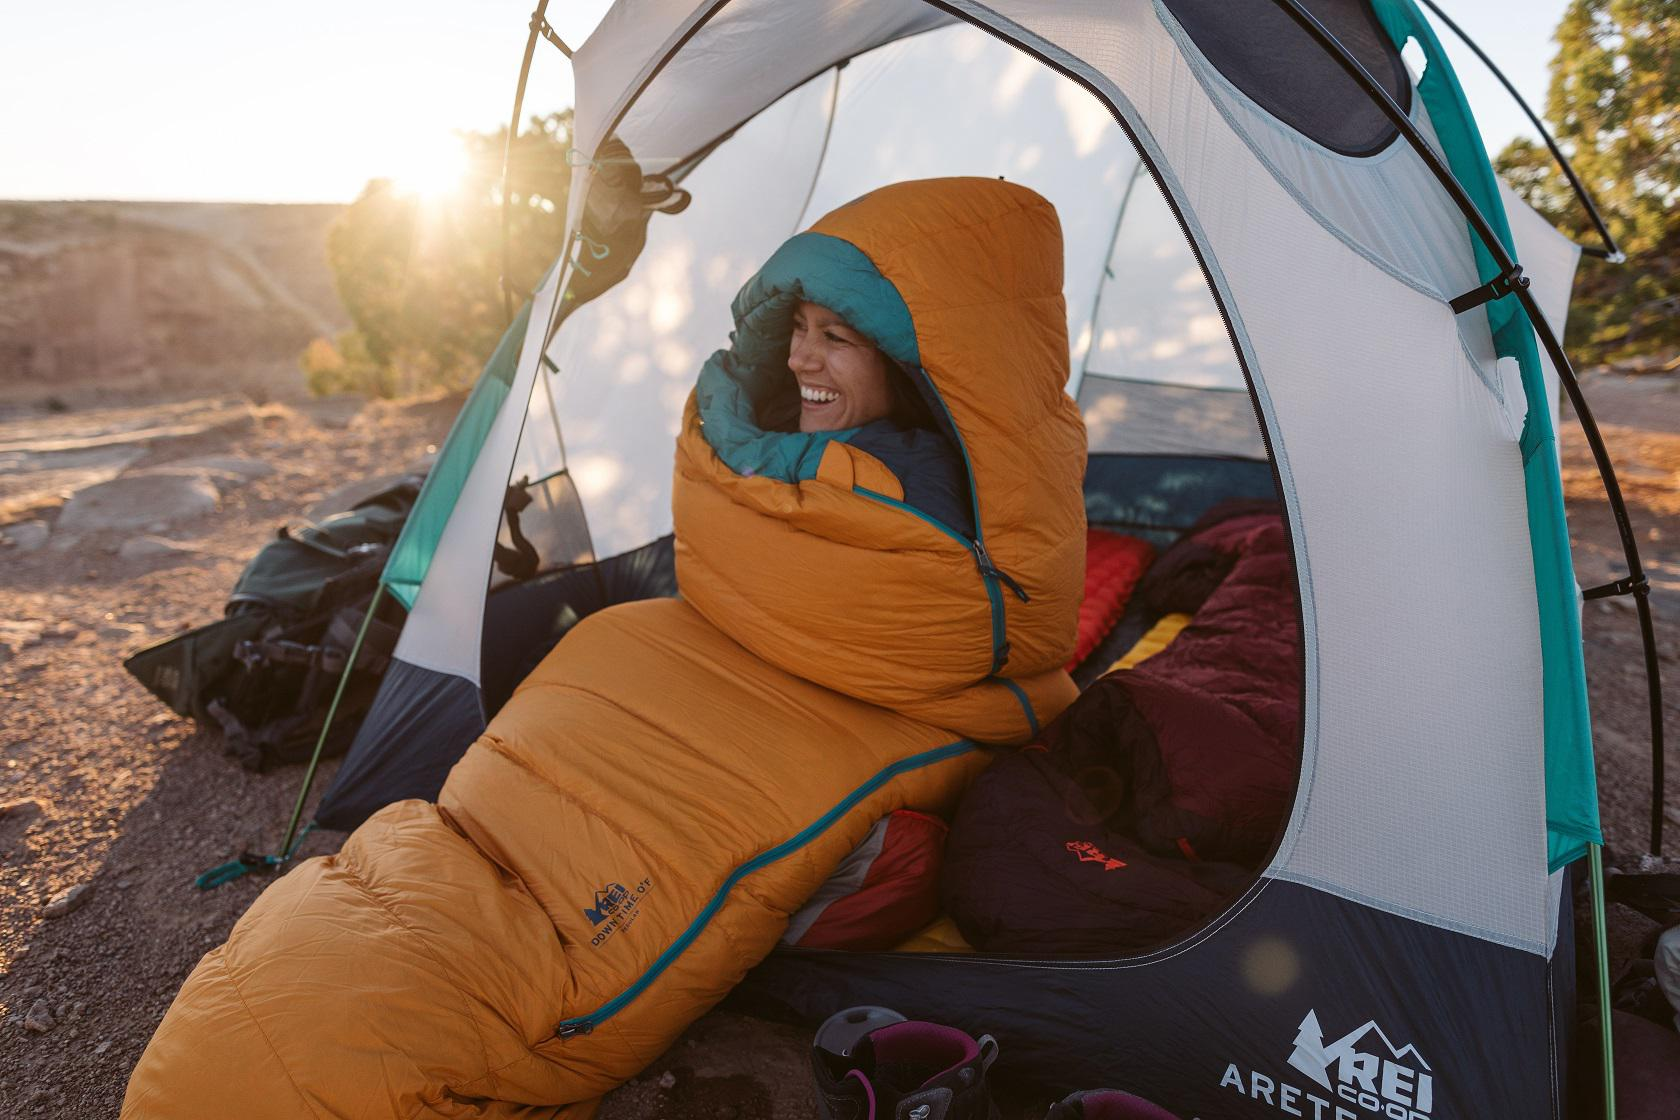 Women's Backcountry Tents and Sleep Systems Workshop